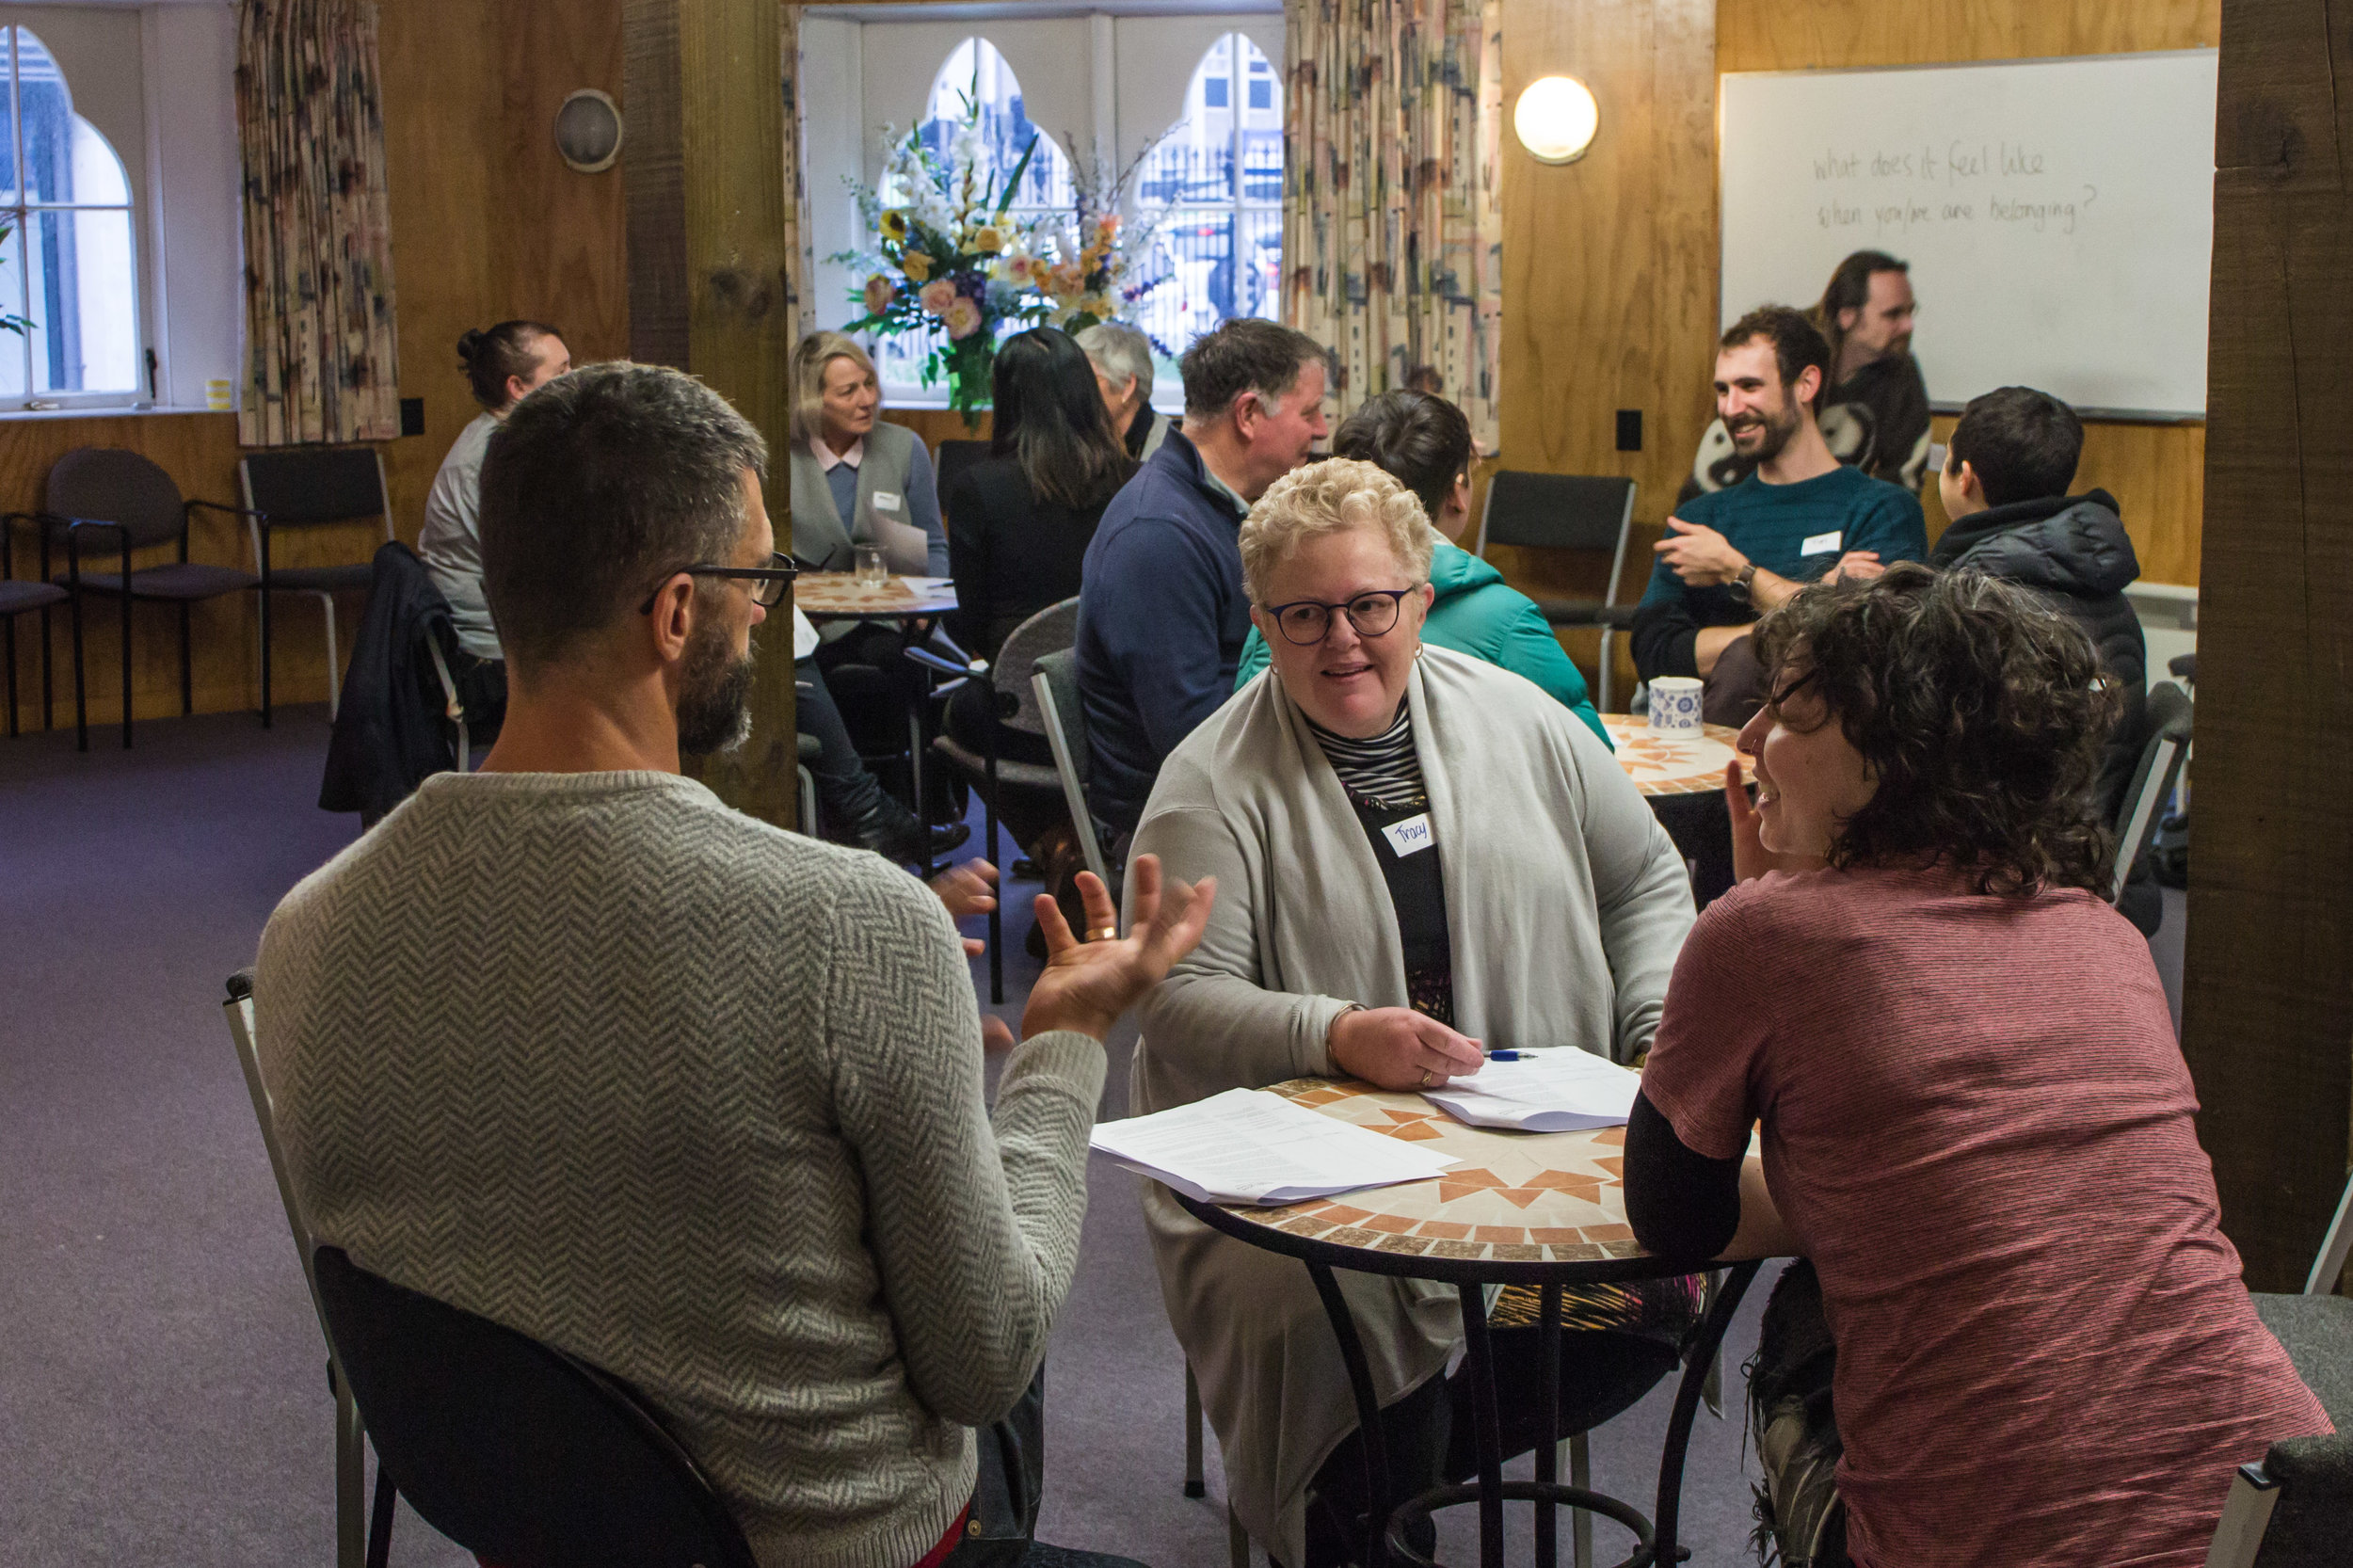 Host a conversation in your neighbourhood - Wellington Conversations is always open to connecting new neighbourhoods and communities. If you'd like to help get some Wellington Conversations events happening in your neighbourhood, or if you have a venue that may be suitable, we'd love to hear from you.